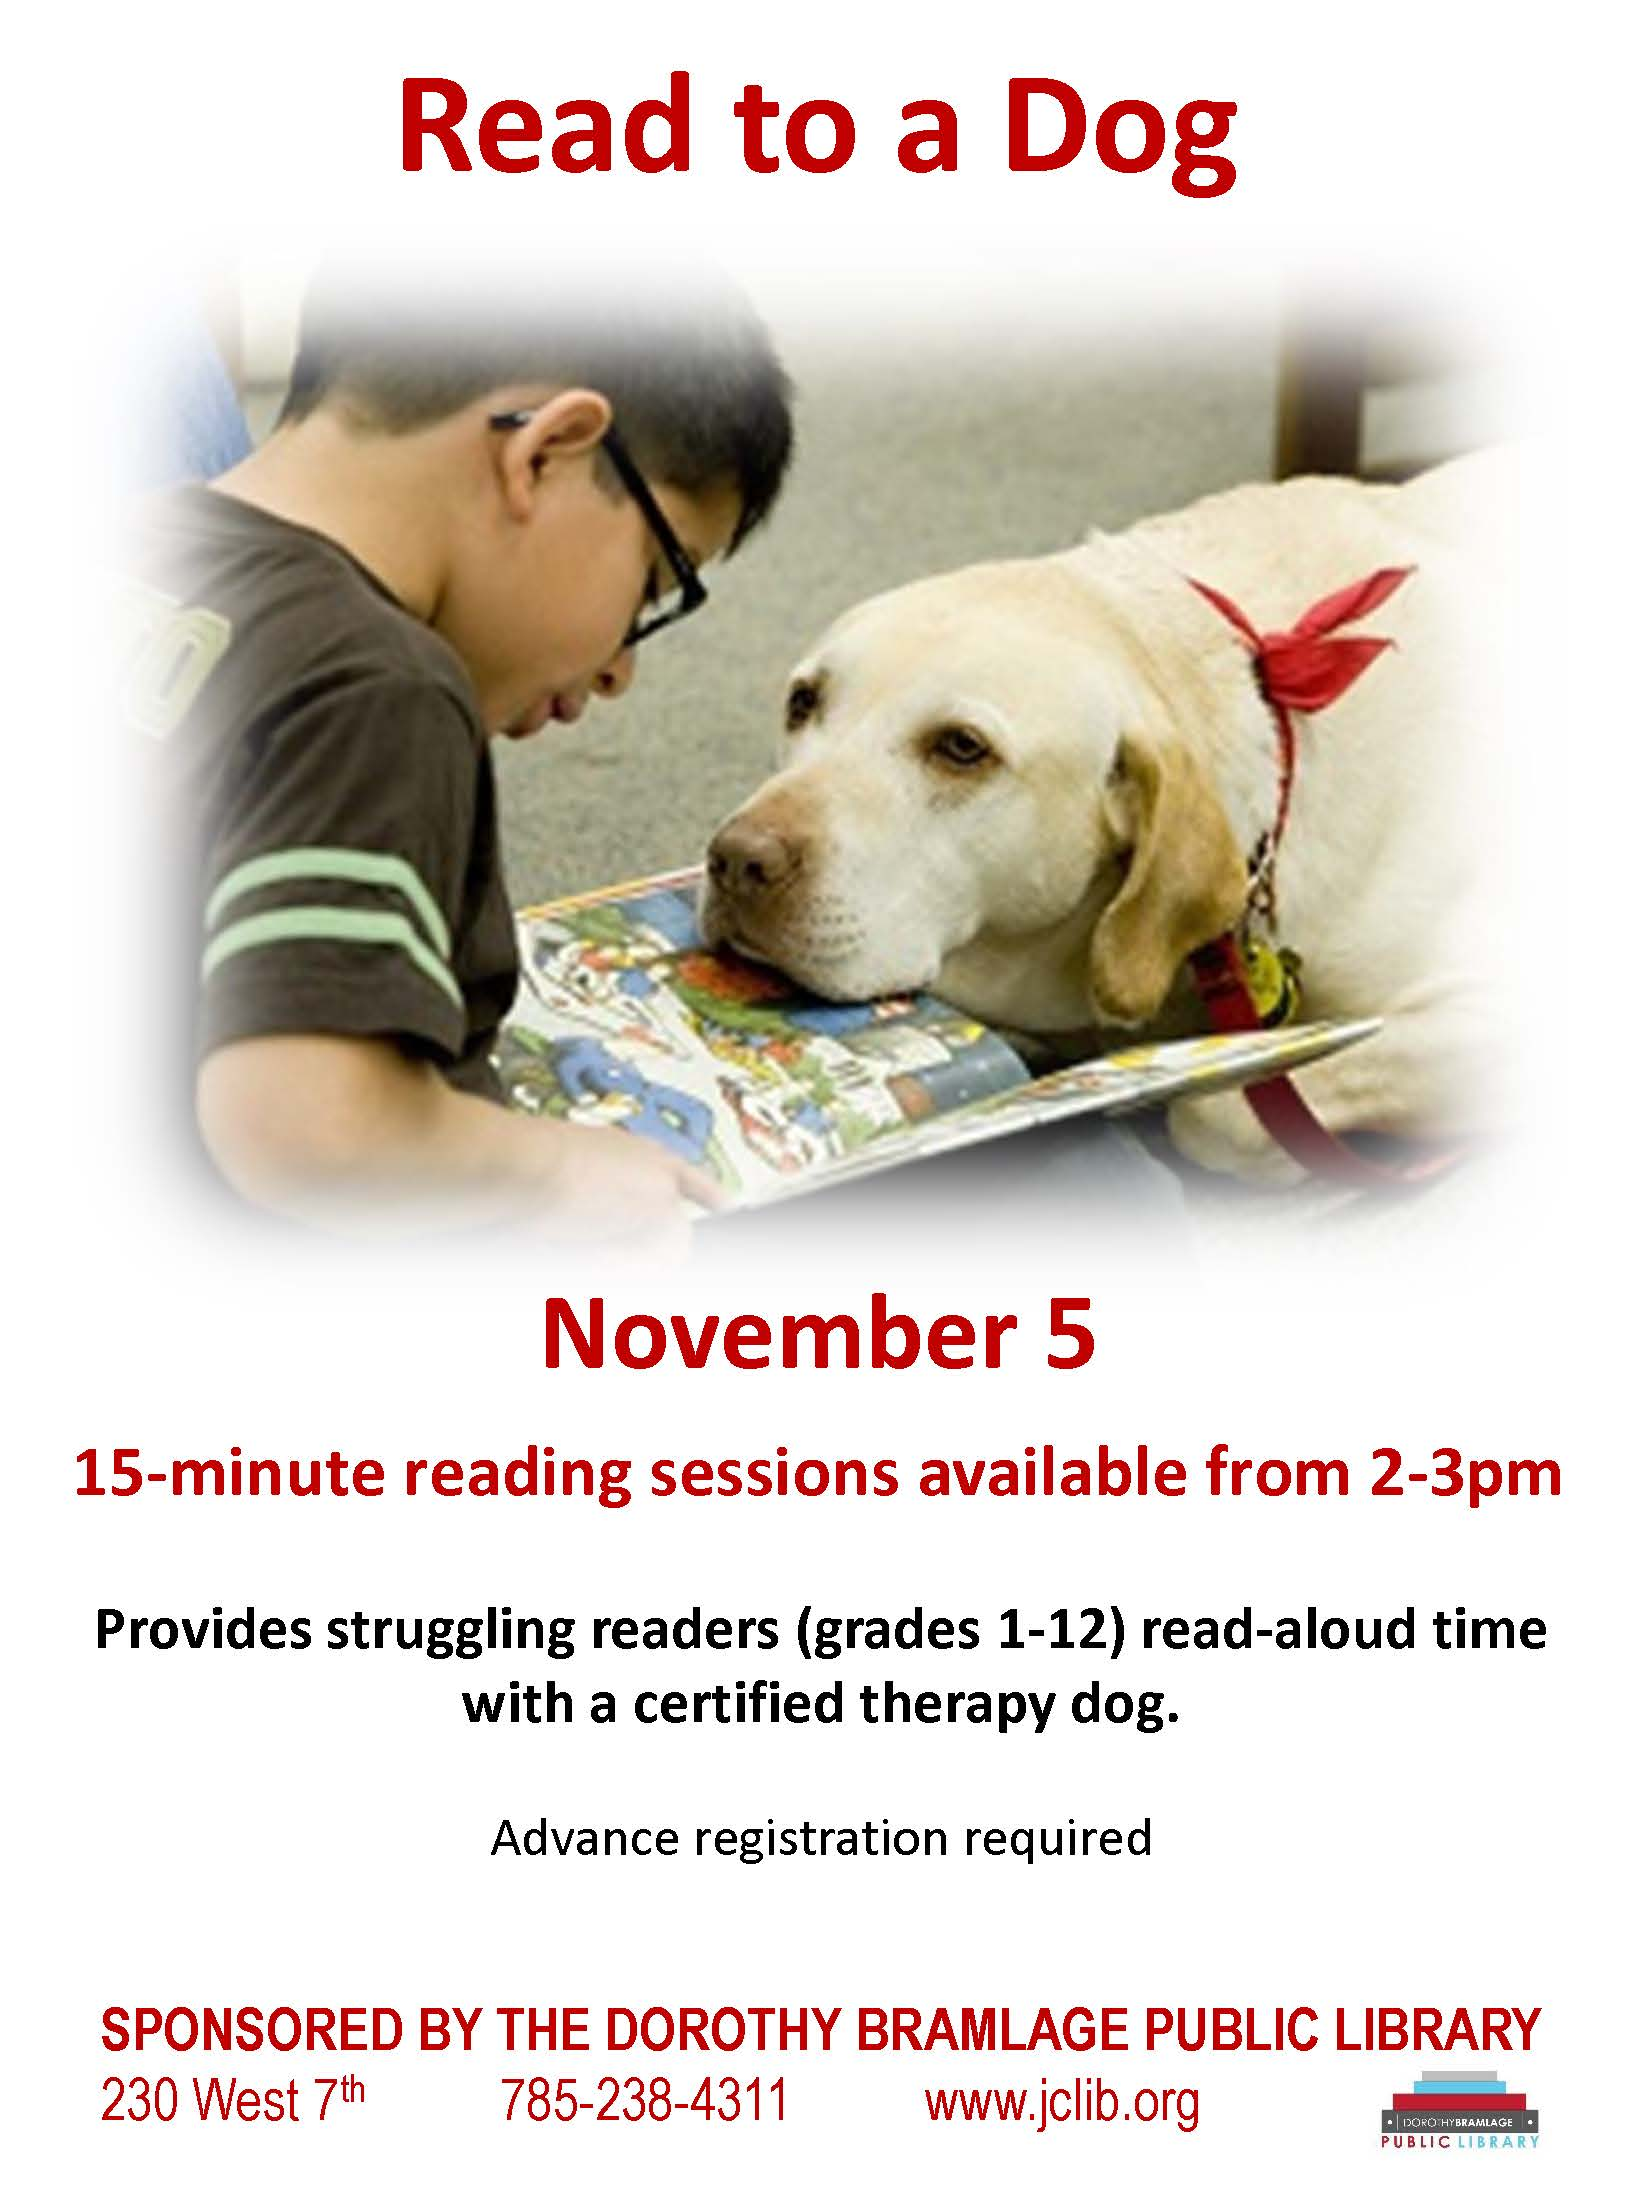 Read to a Dog Flyer